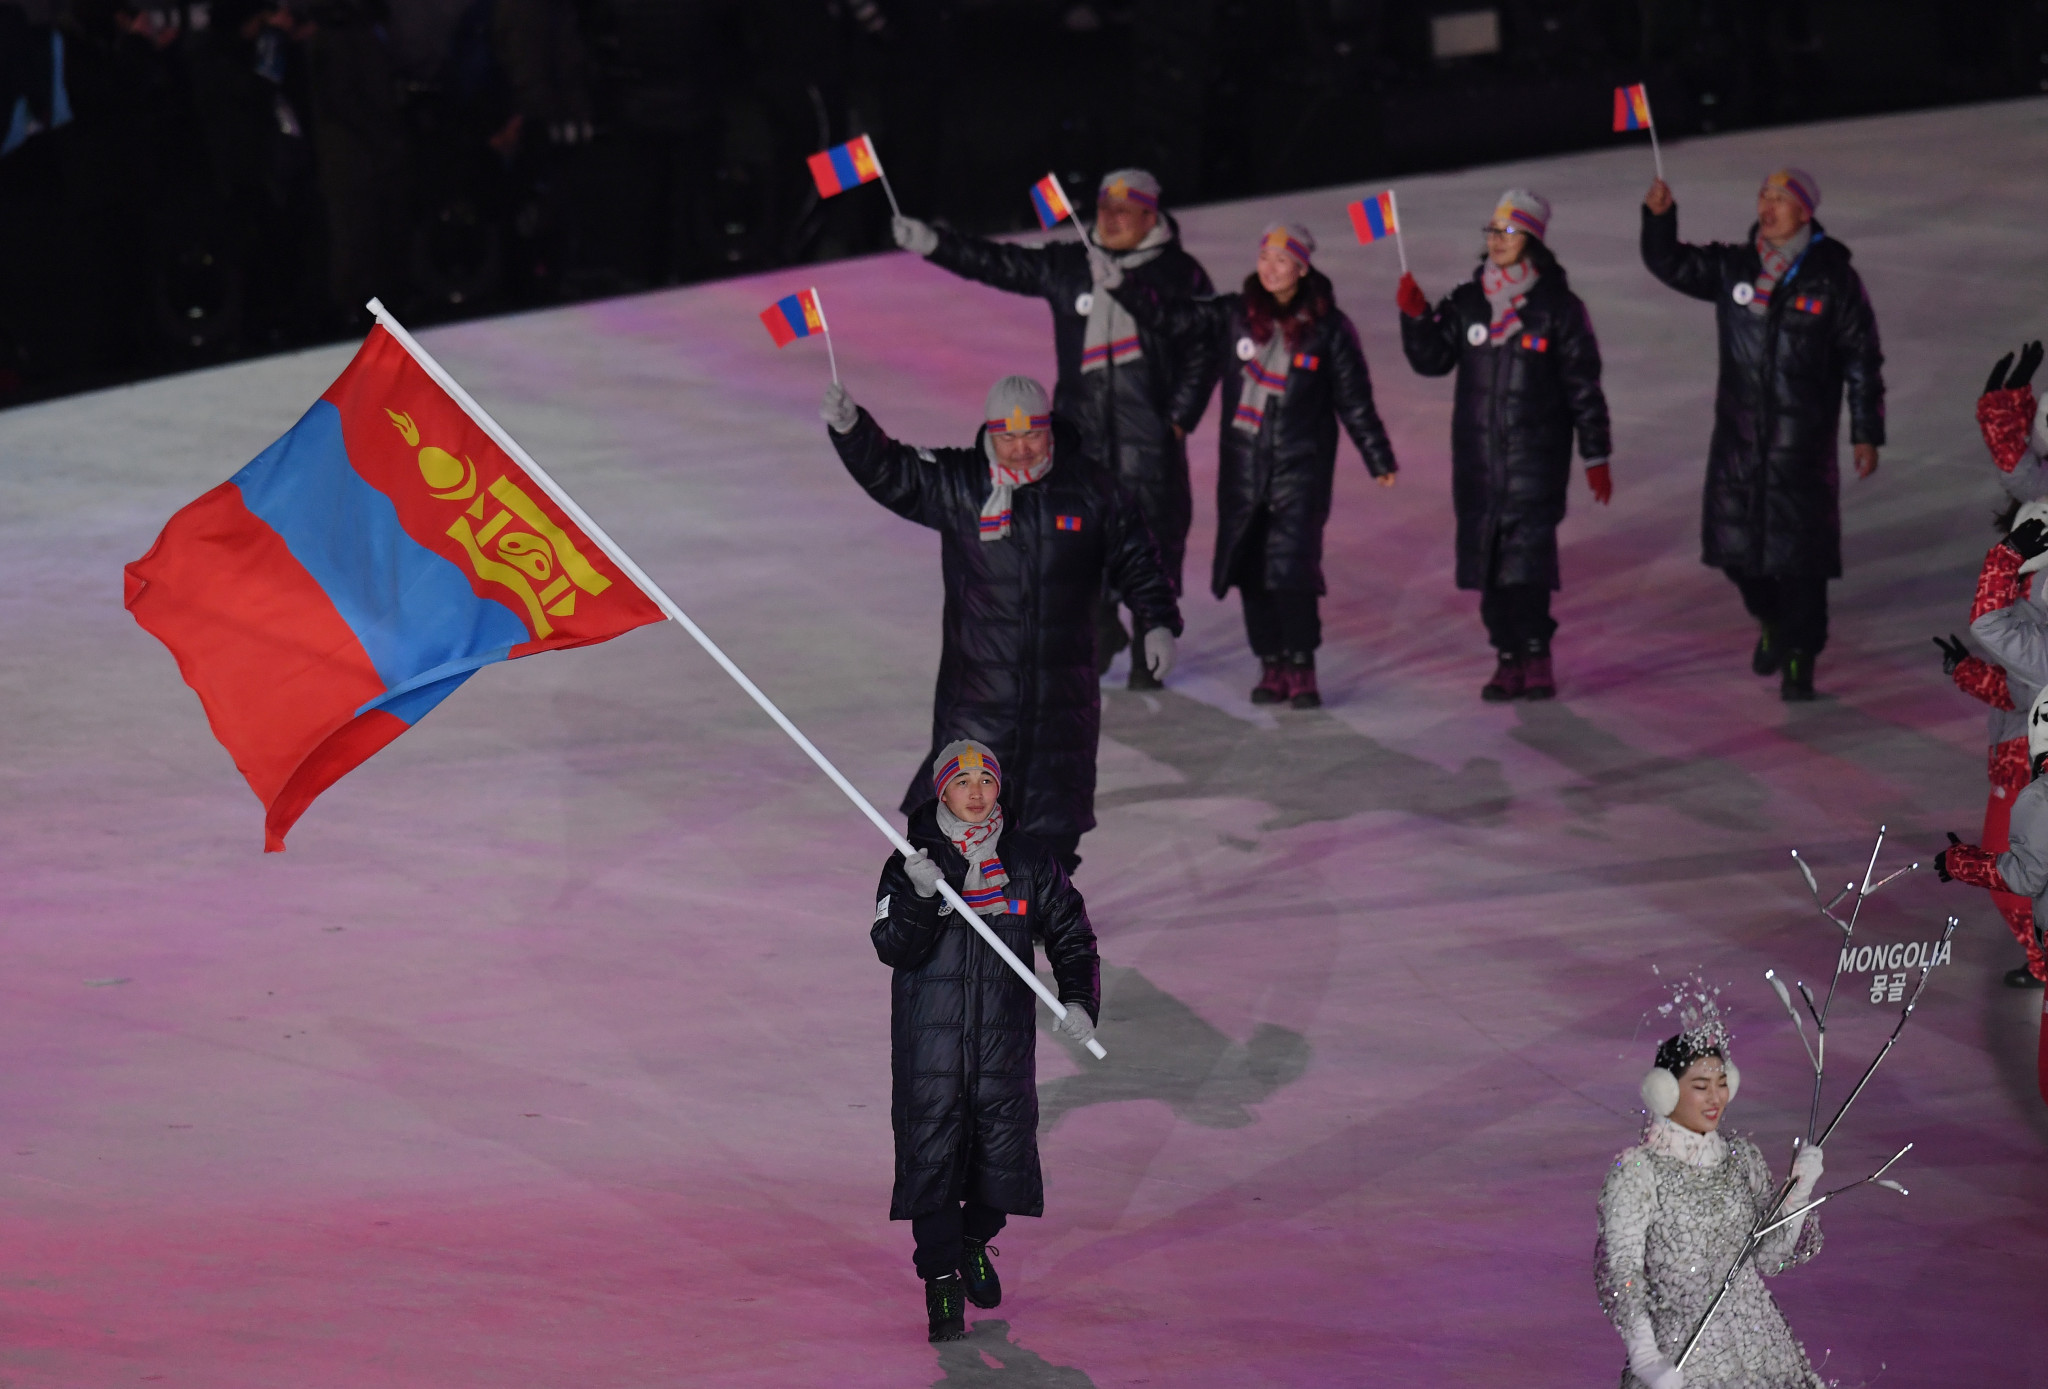 Mongolian NOC Olympic Scholarship holders receive last grants before Tokyo 2020